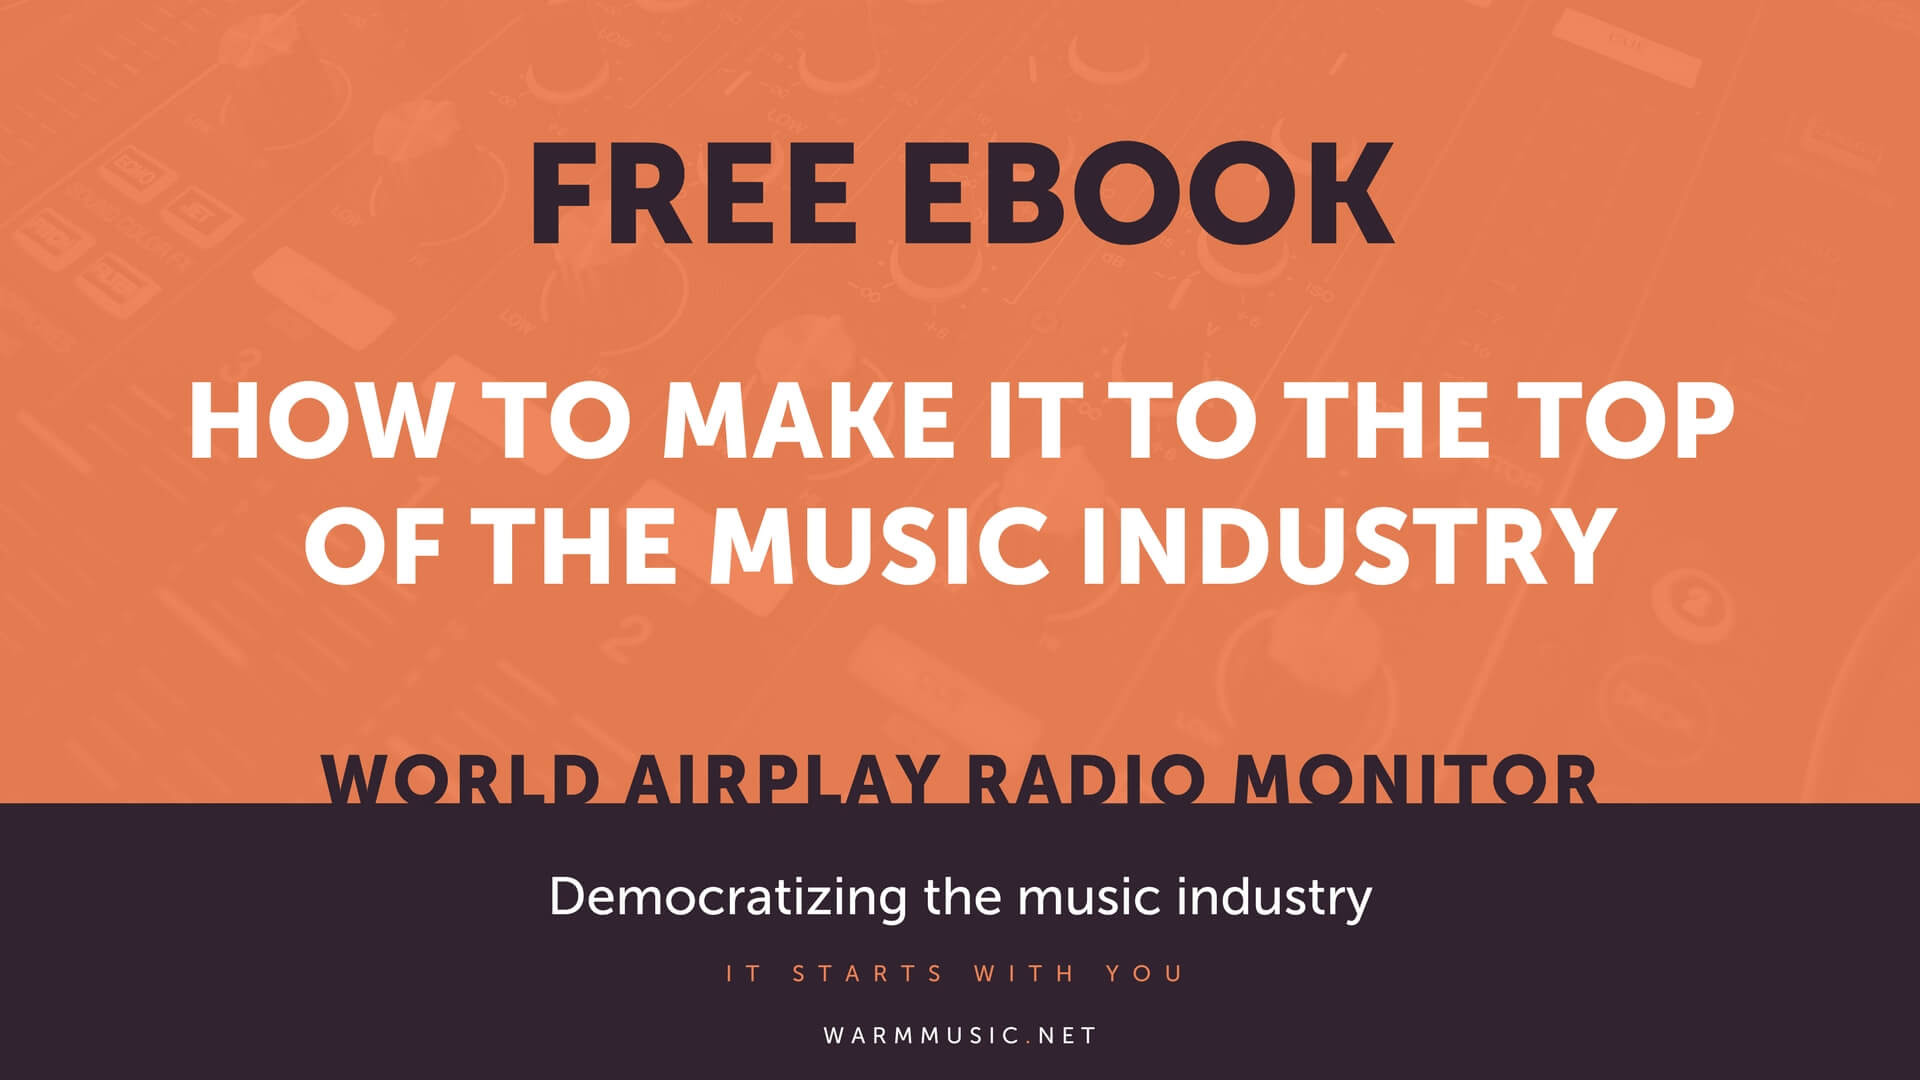 How To Make It To The Top Of The Music Industry